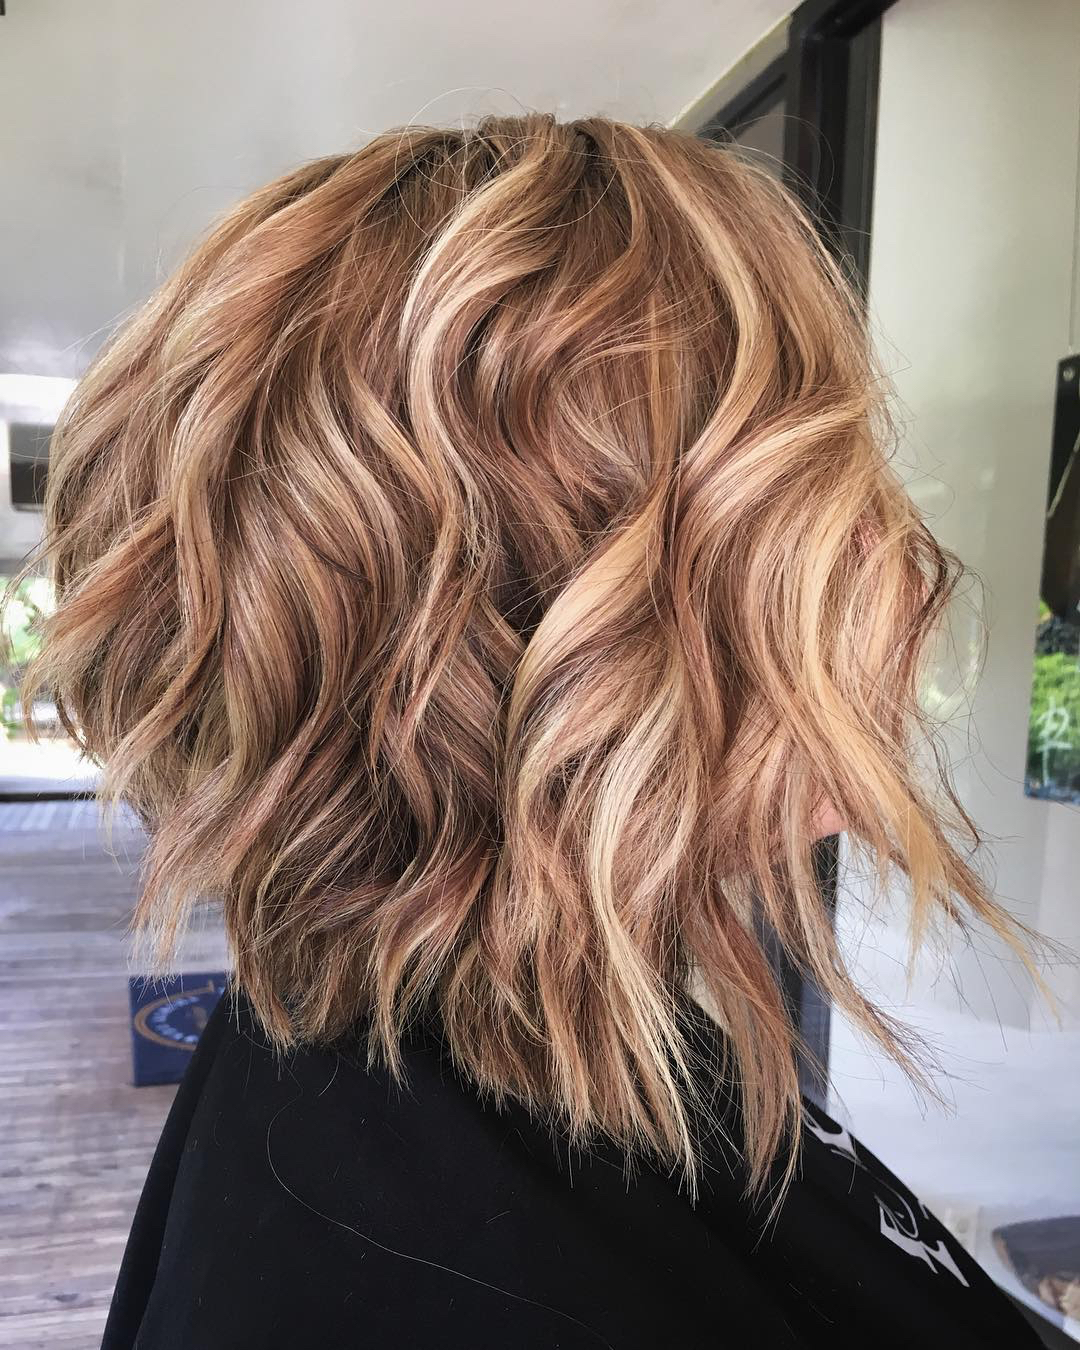 brown hair colours and styles fall hair color trends for health 5247 | fall blonde red undertones soulsnap